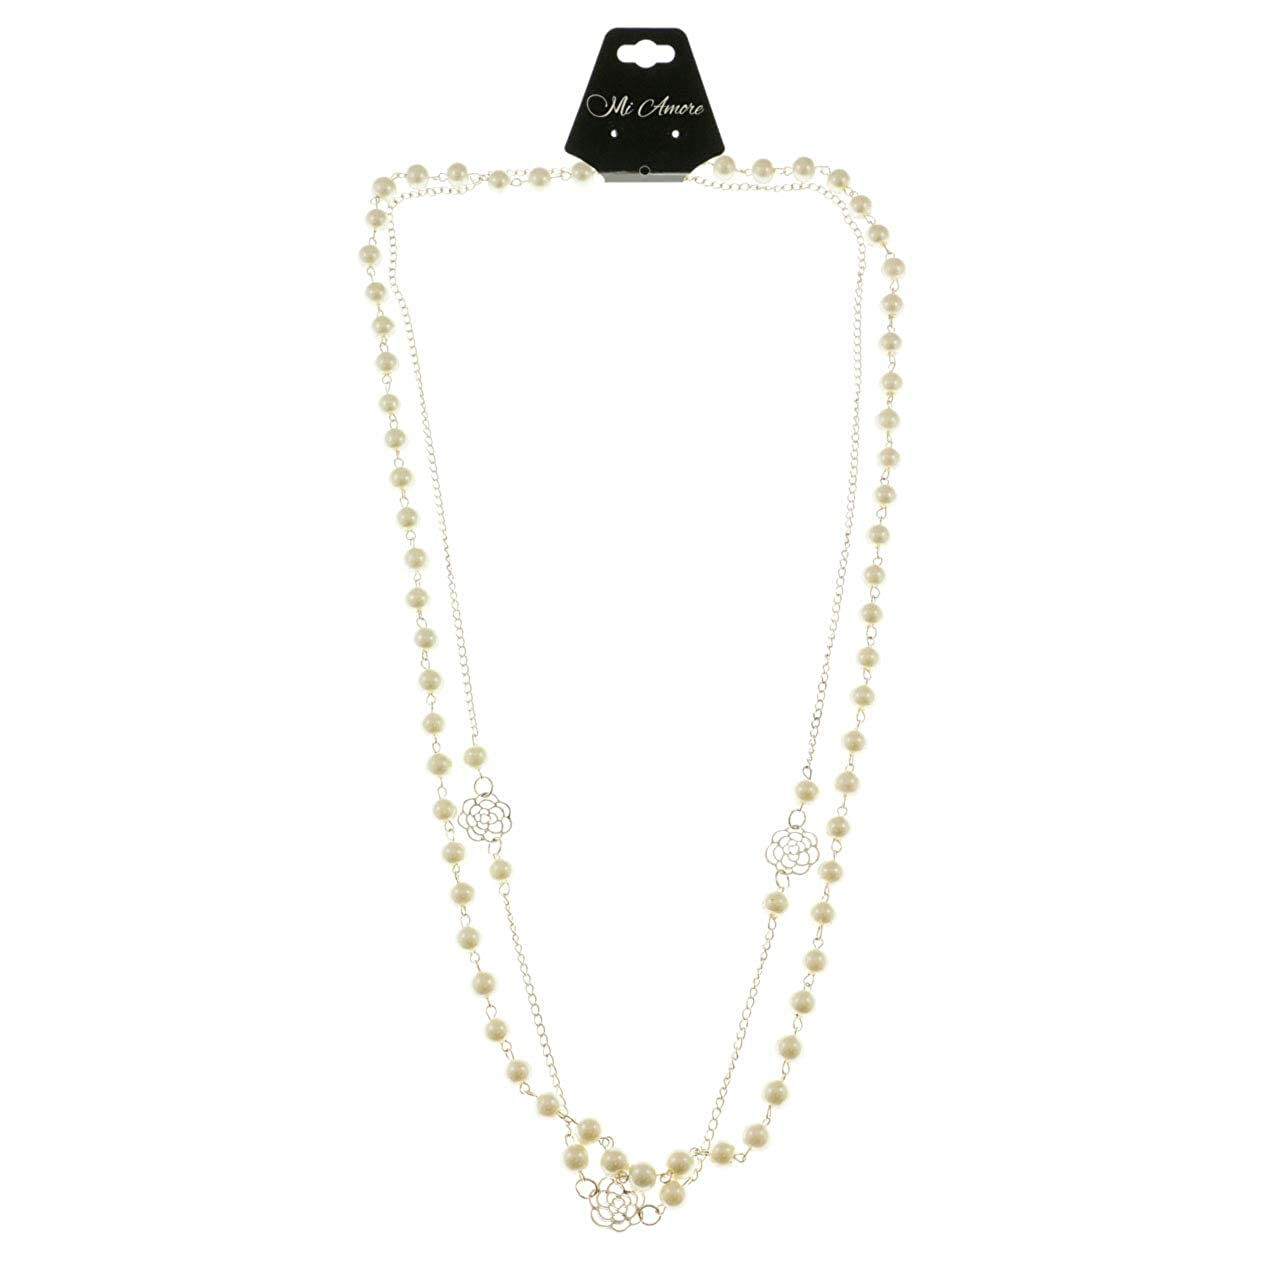 Mi Amore Flowers Statement-Necklace Gold-Tone//White